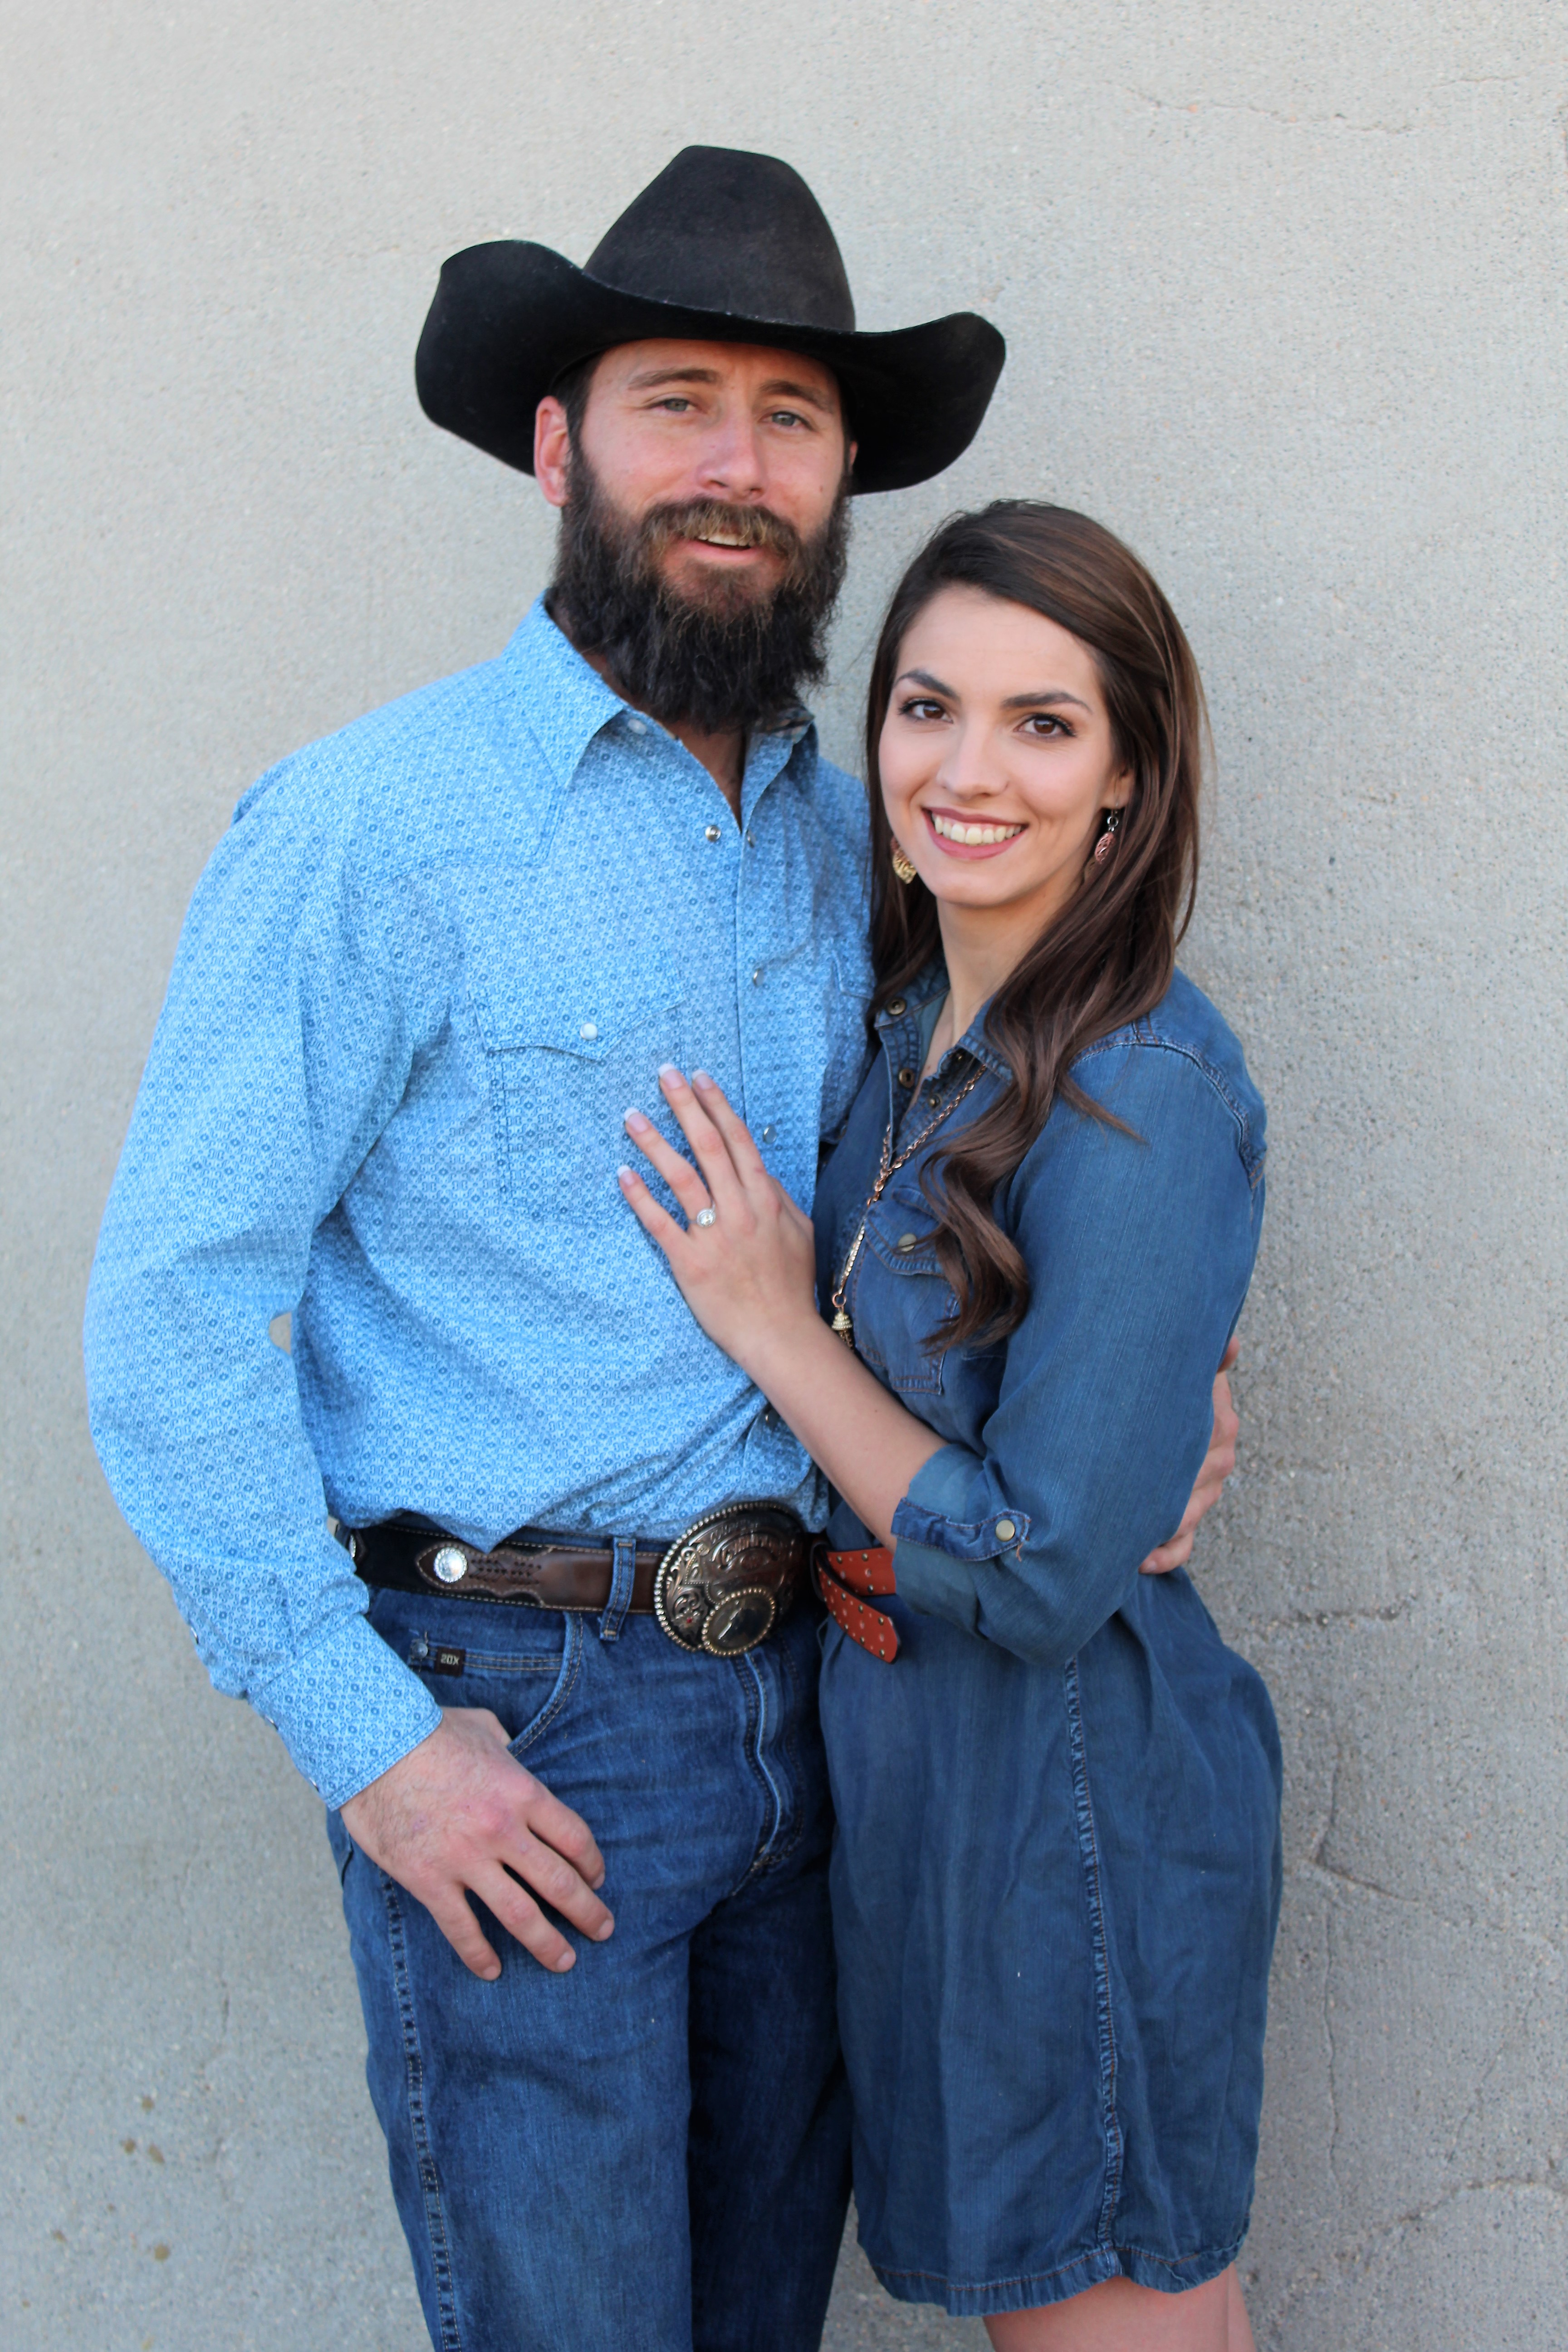 Kolb & James Engagement Announcement